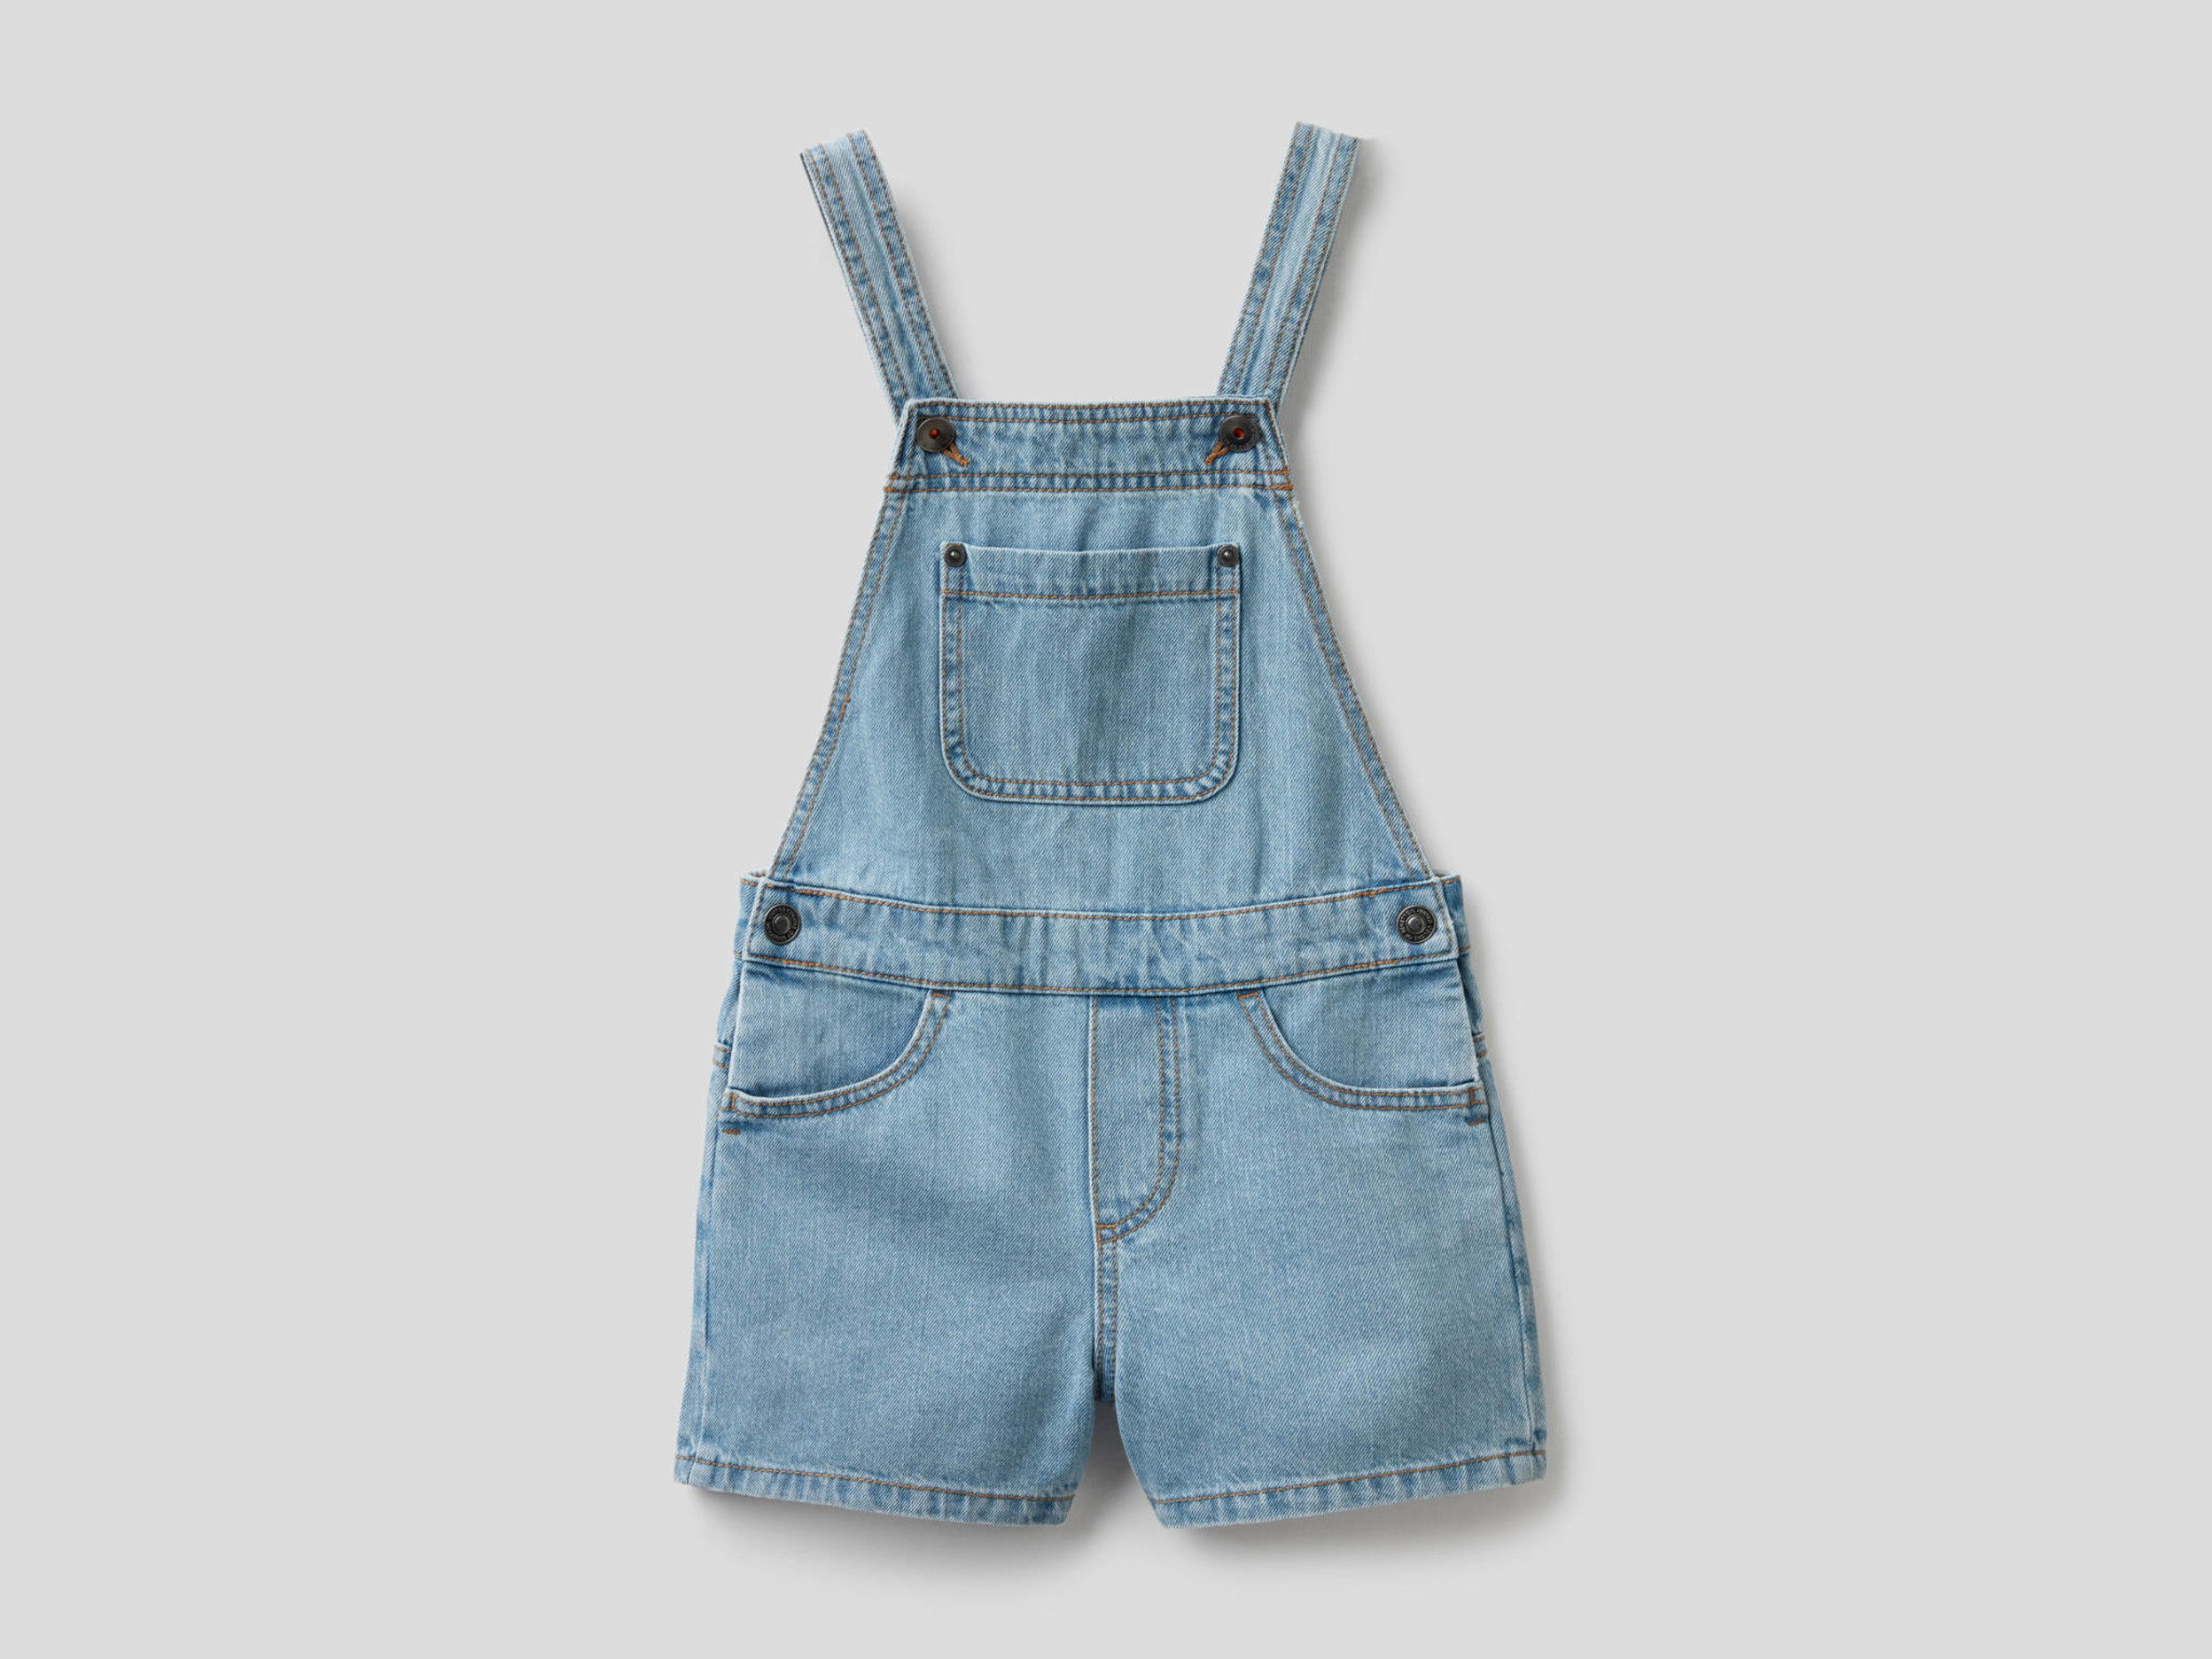 Benetton, Salopette Corta In Denim Di 100% Cotone, taglia XL, Celeste, Bambini - United Colors of Benetton - Modalova